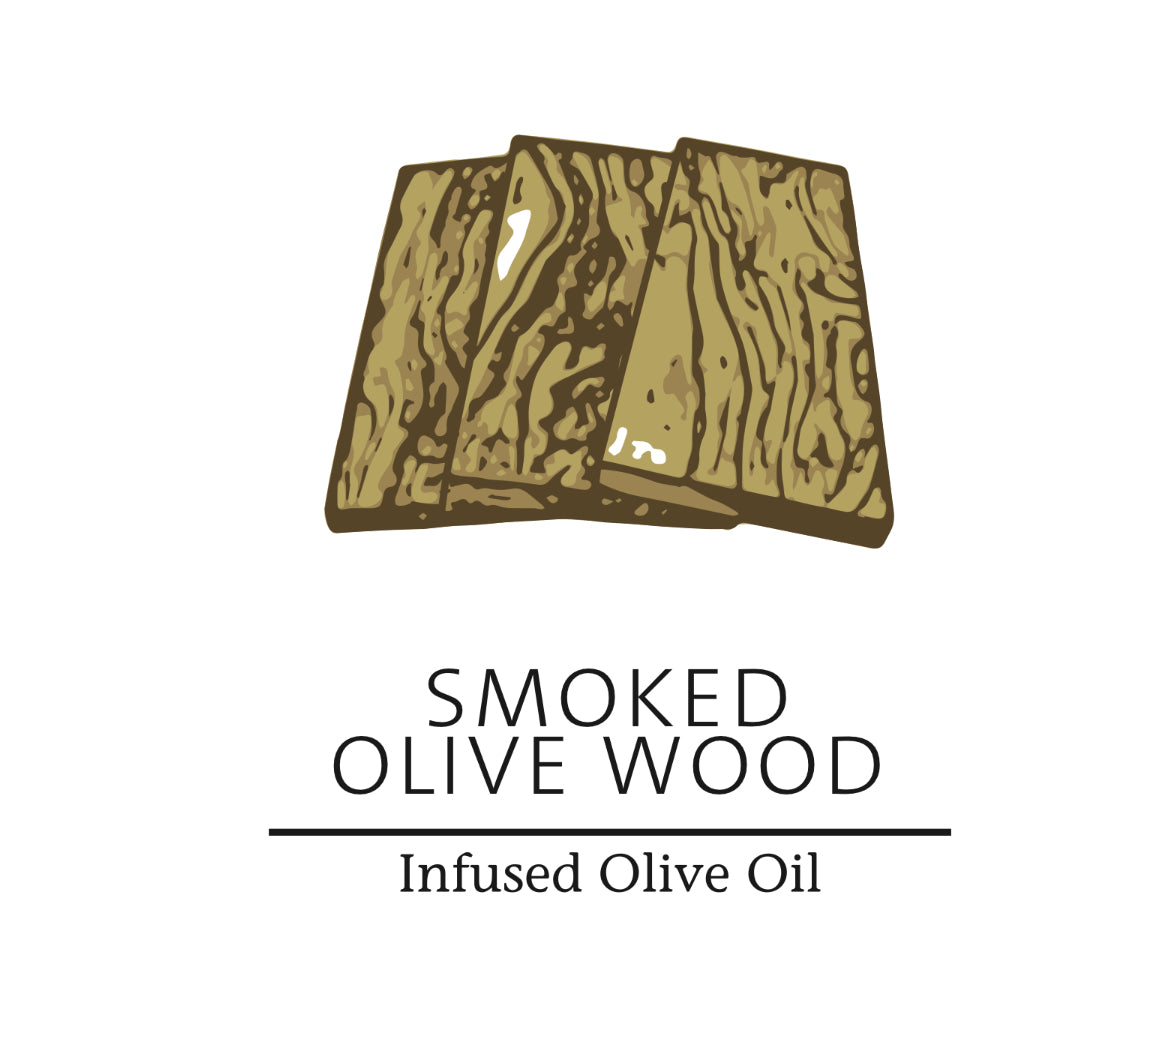 Smoked Olive Wood Olive Oil